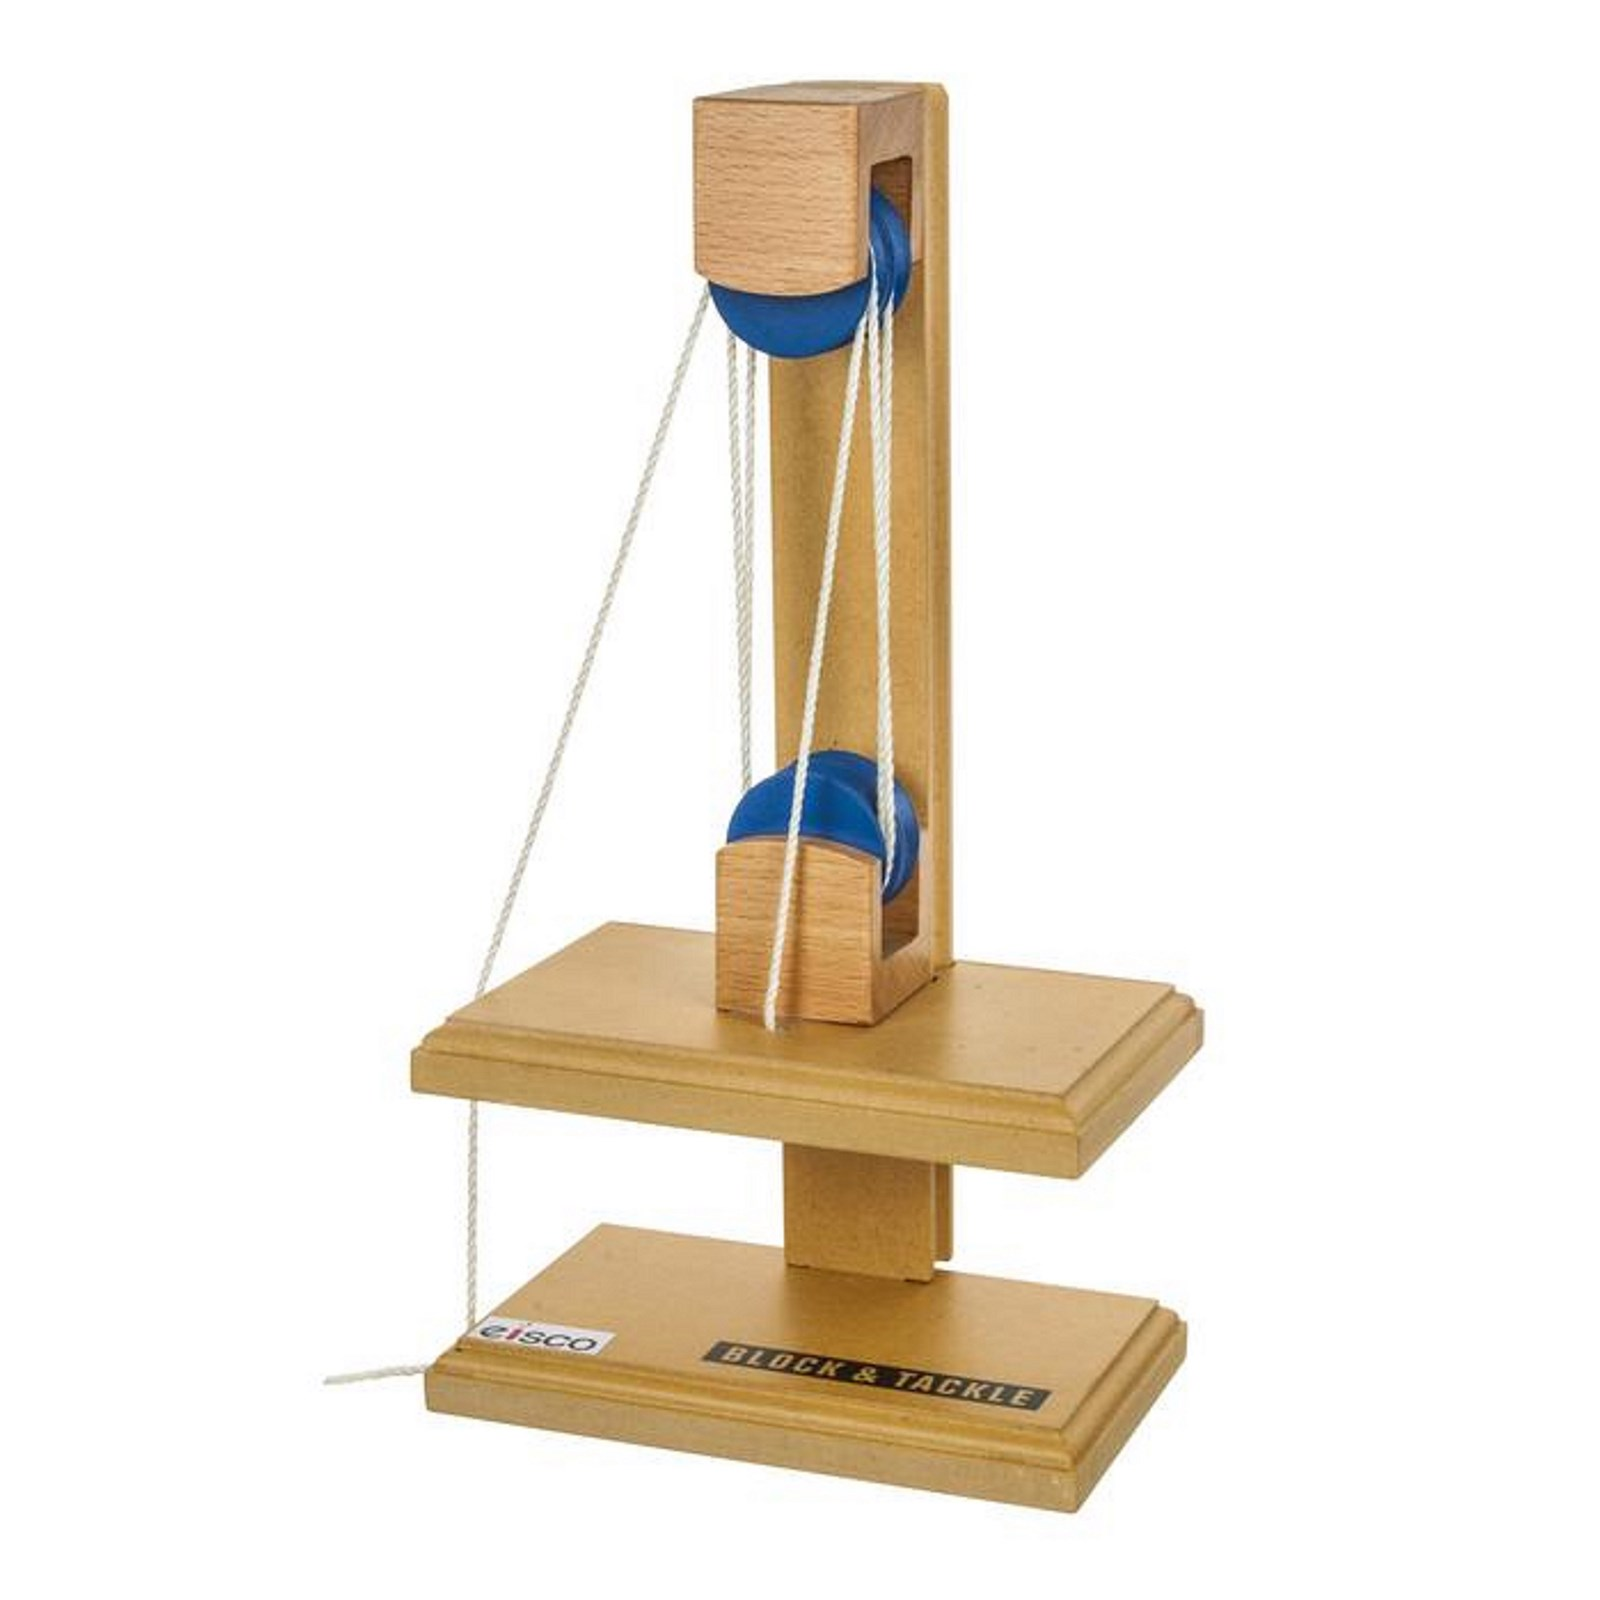 Simple Machines Block And Tackle